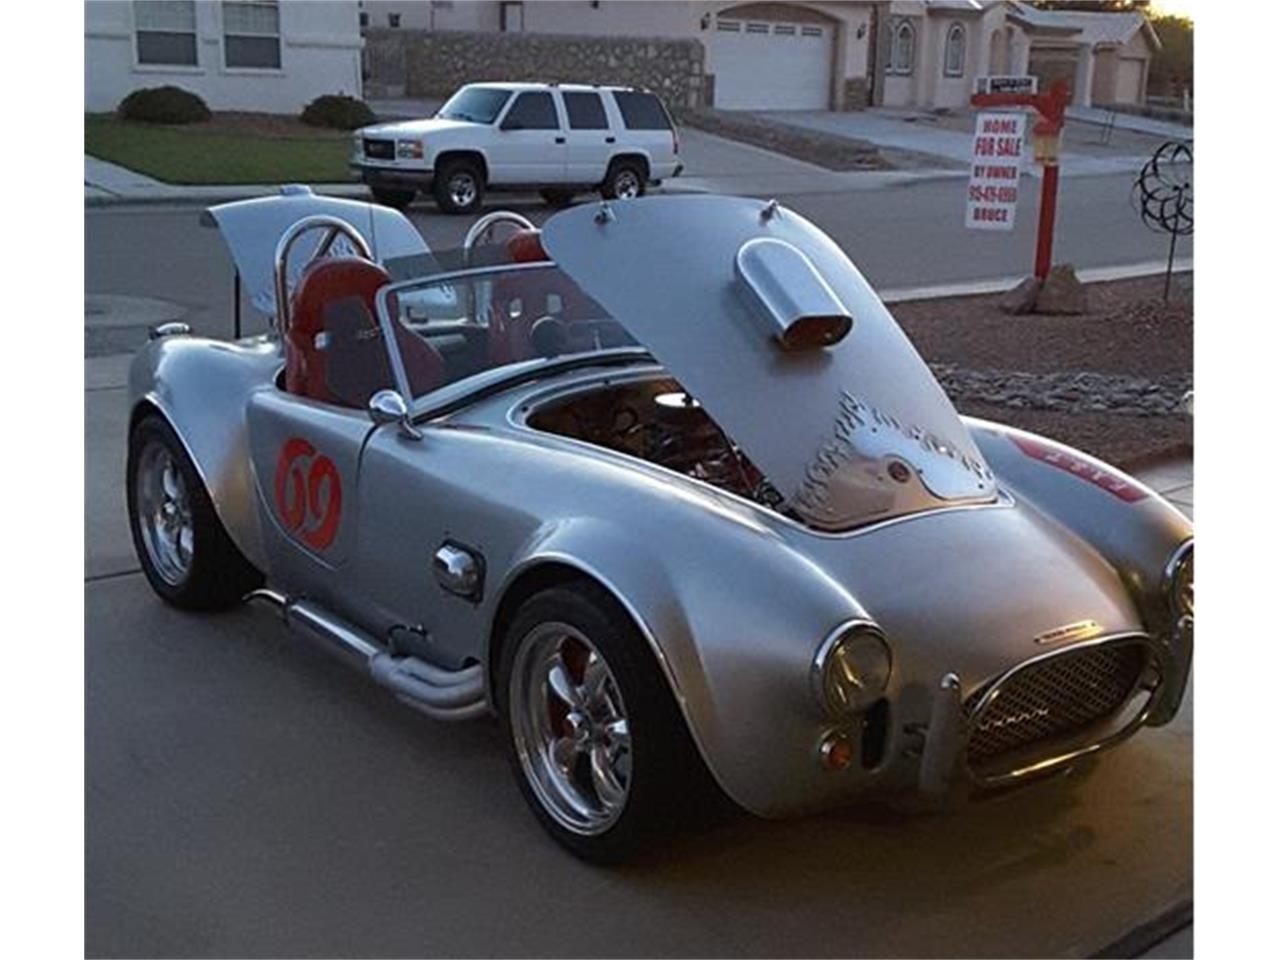 Large Picture of 1965 Factory Five Cobra located in Cantillo Texas - $30,000.00 Offered by a Private Seller - M1ZQ